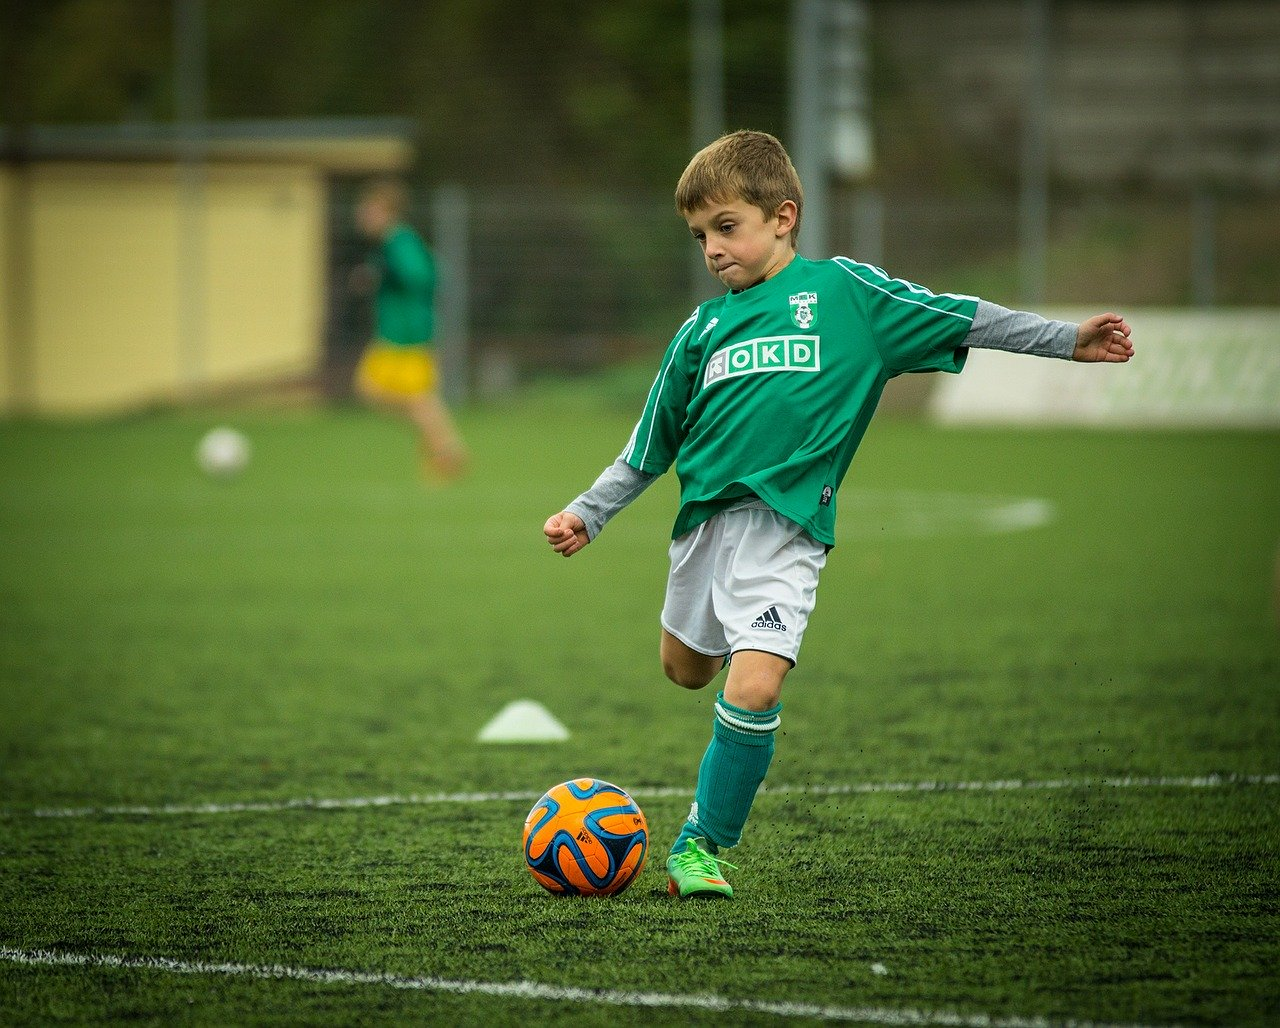 reasons to play football-football articles for students-alignthoughts